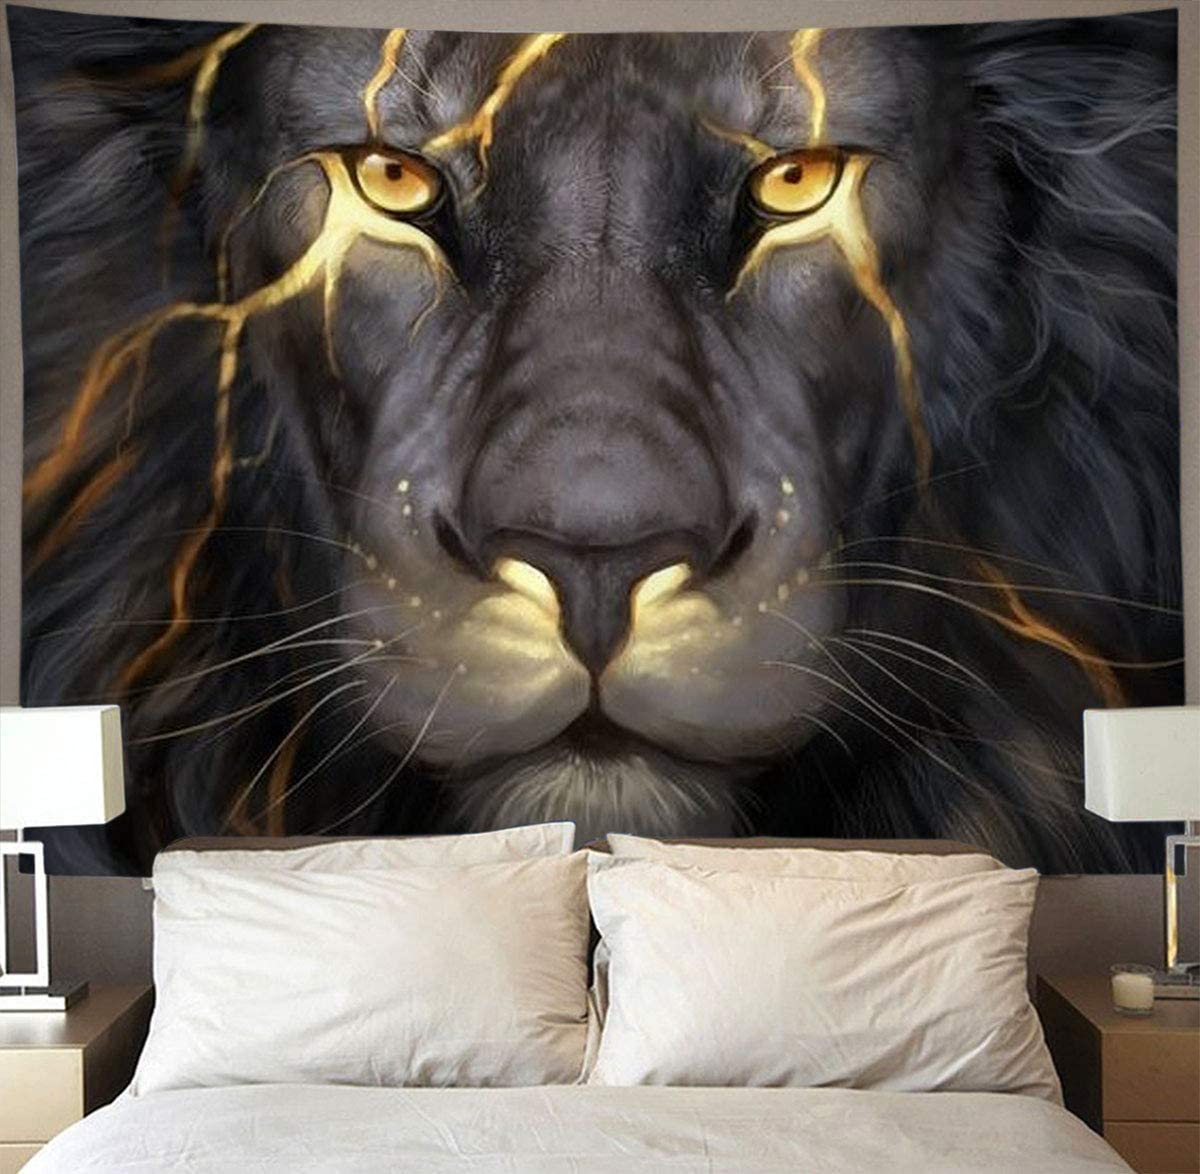 NiYoung Golden Cool Lion King paninting Wall Tapestry Hippie Art Tapestry Wall Hanging Home Decor Extra Large tablecloths 60x80 inches for Bedroom Living Room Dorm Room